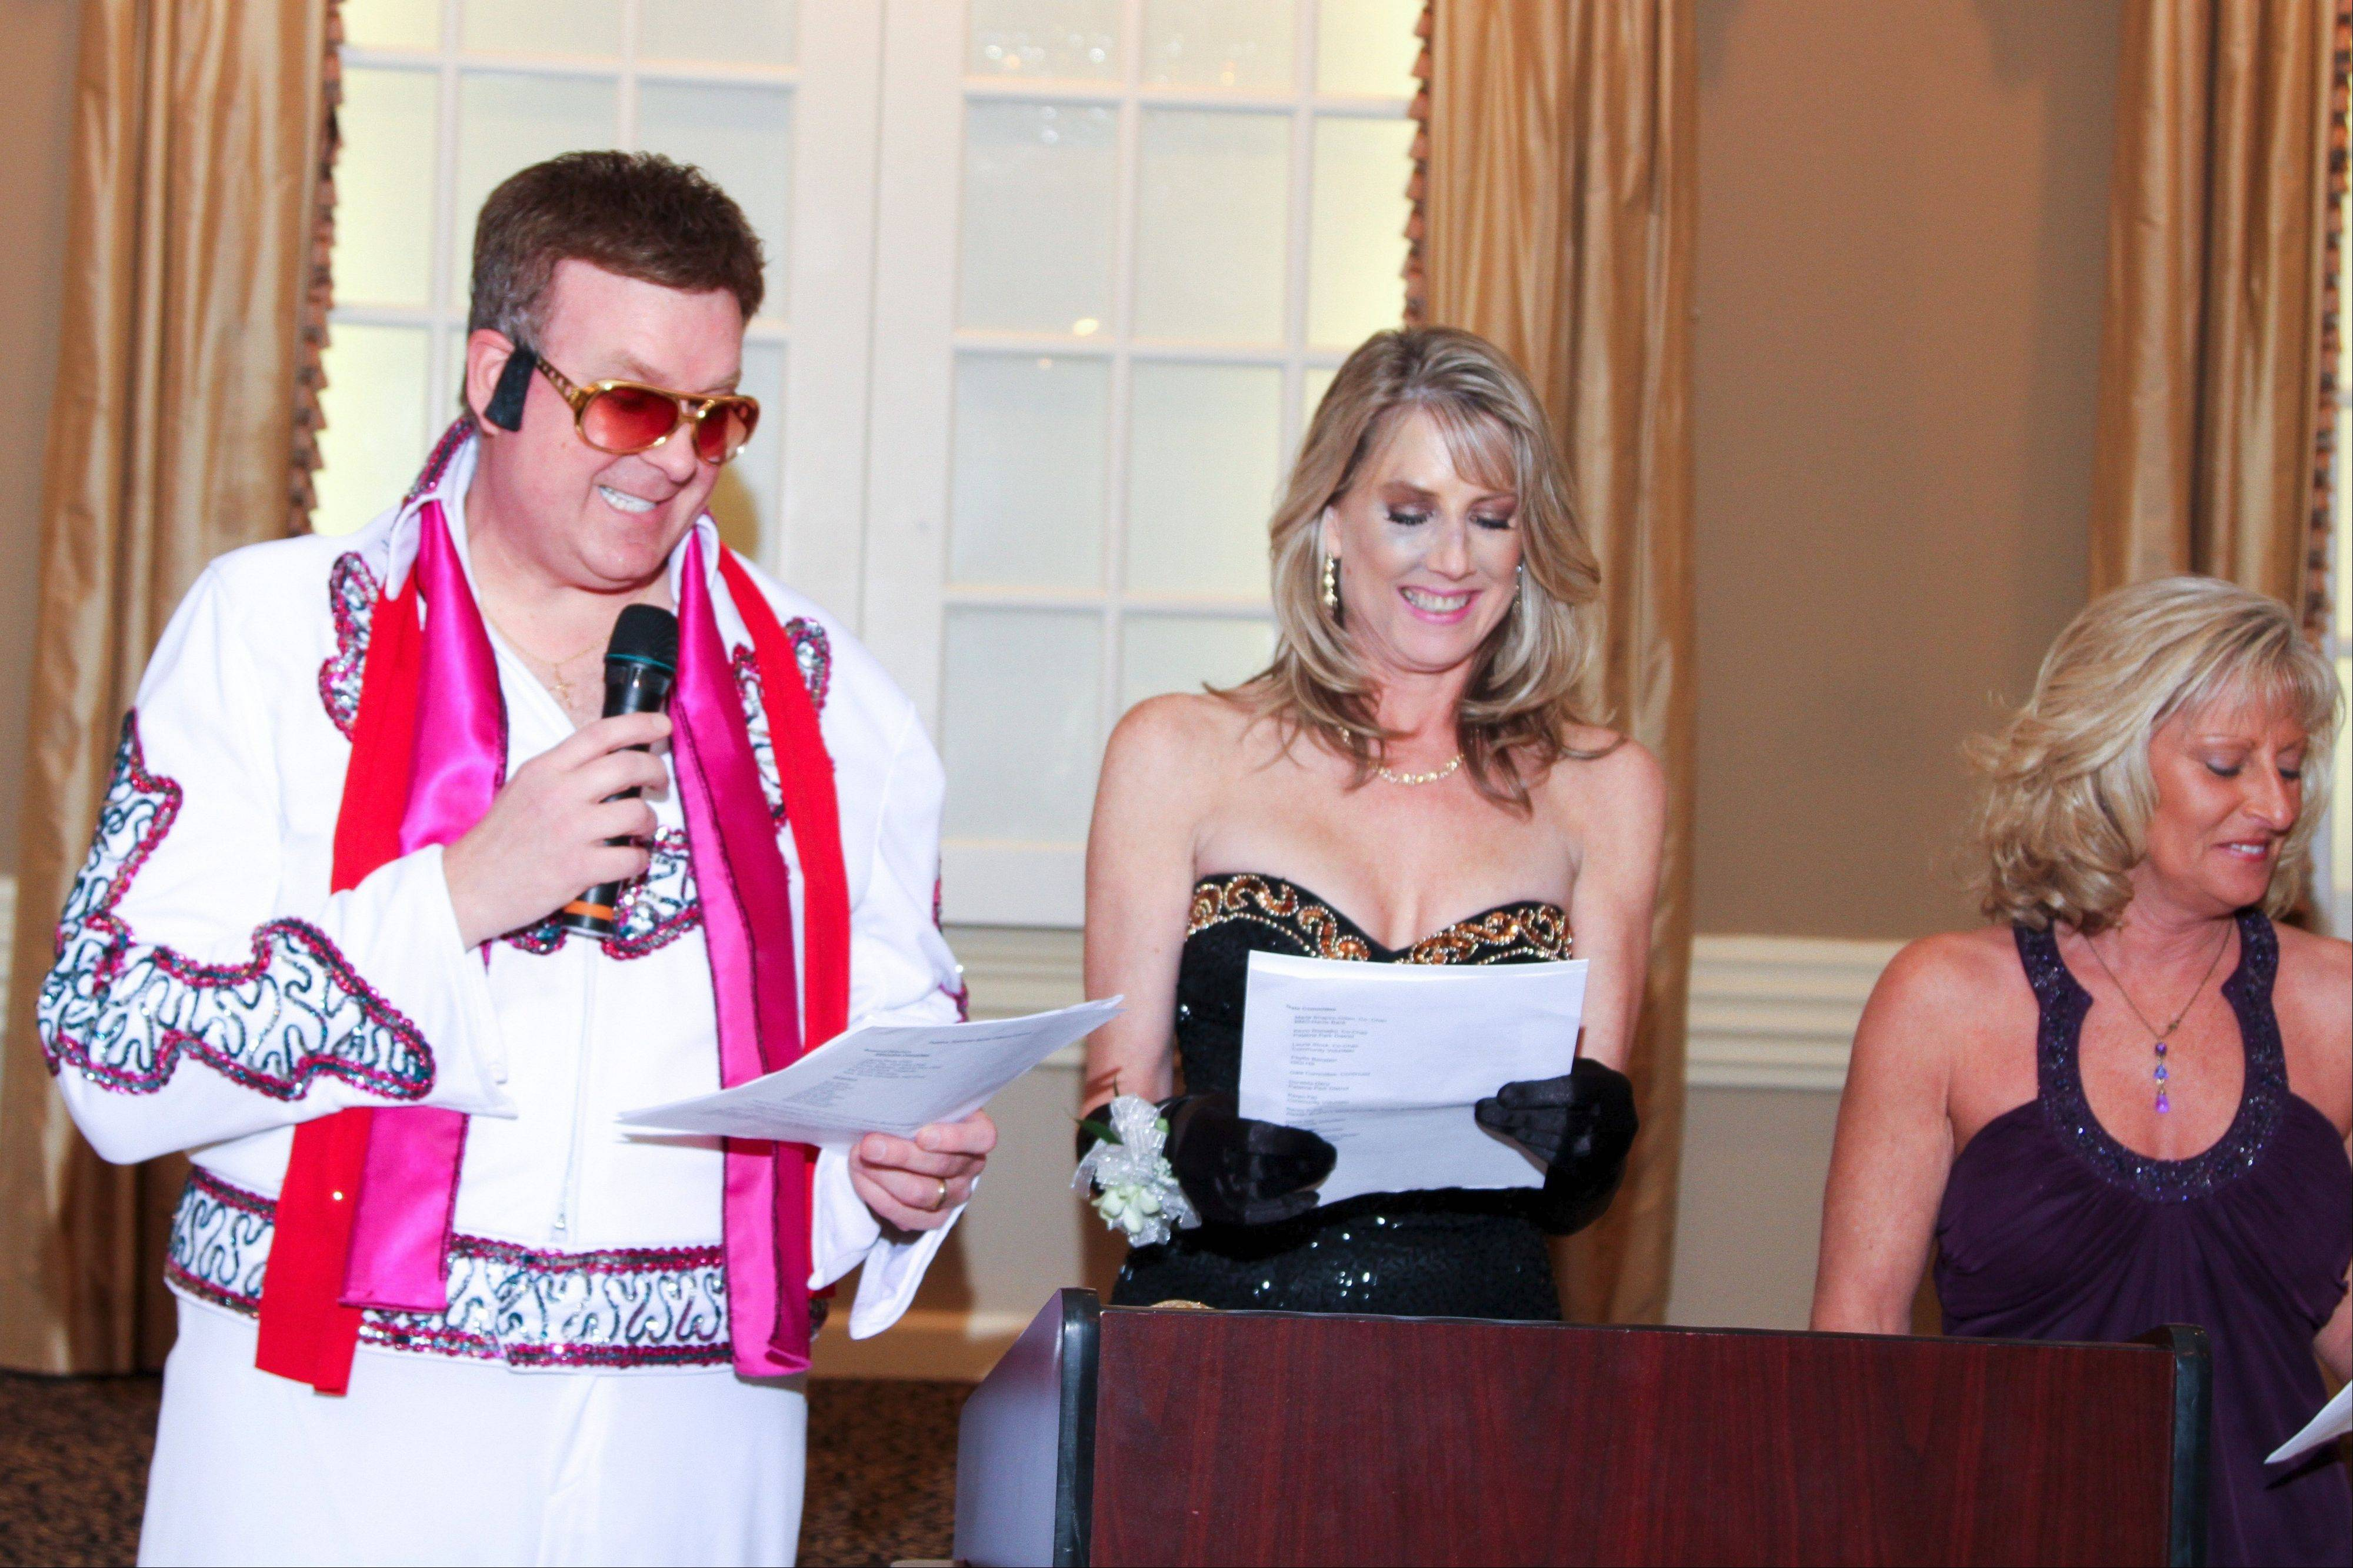 Co-chairs for the Palatine Township Senior Citizens Council's 40th annual gala were Kevin Romejko, who also entertained as Elvis, Laurie Stock and Maria Shapiro-Gillen.